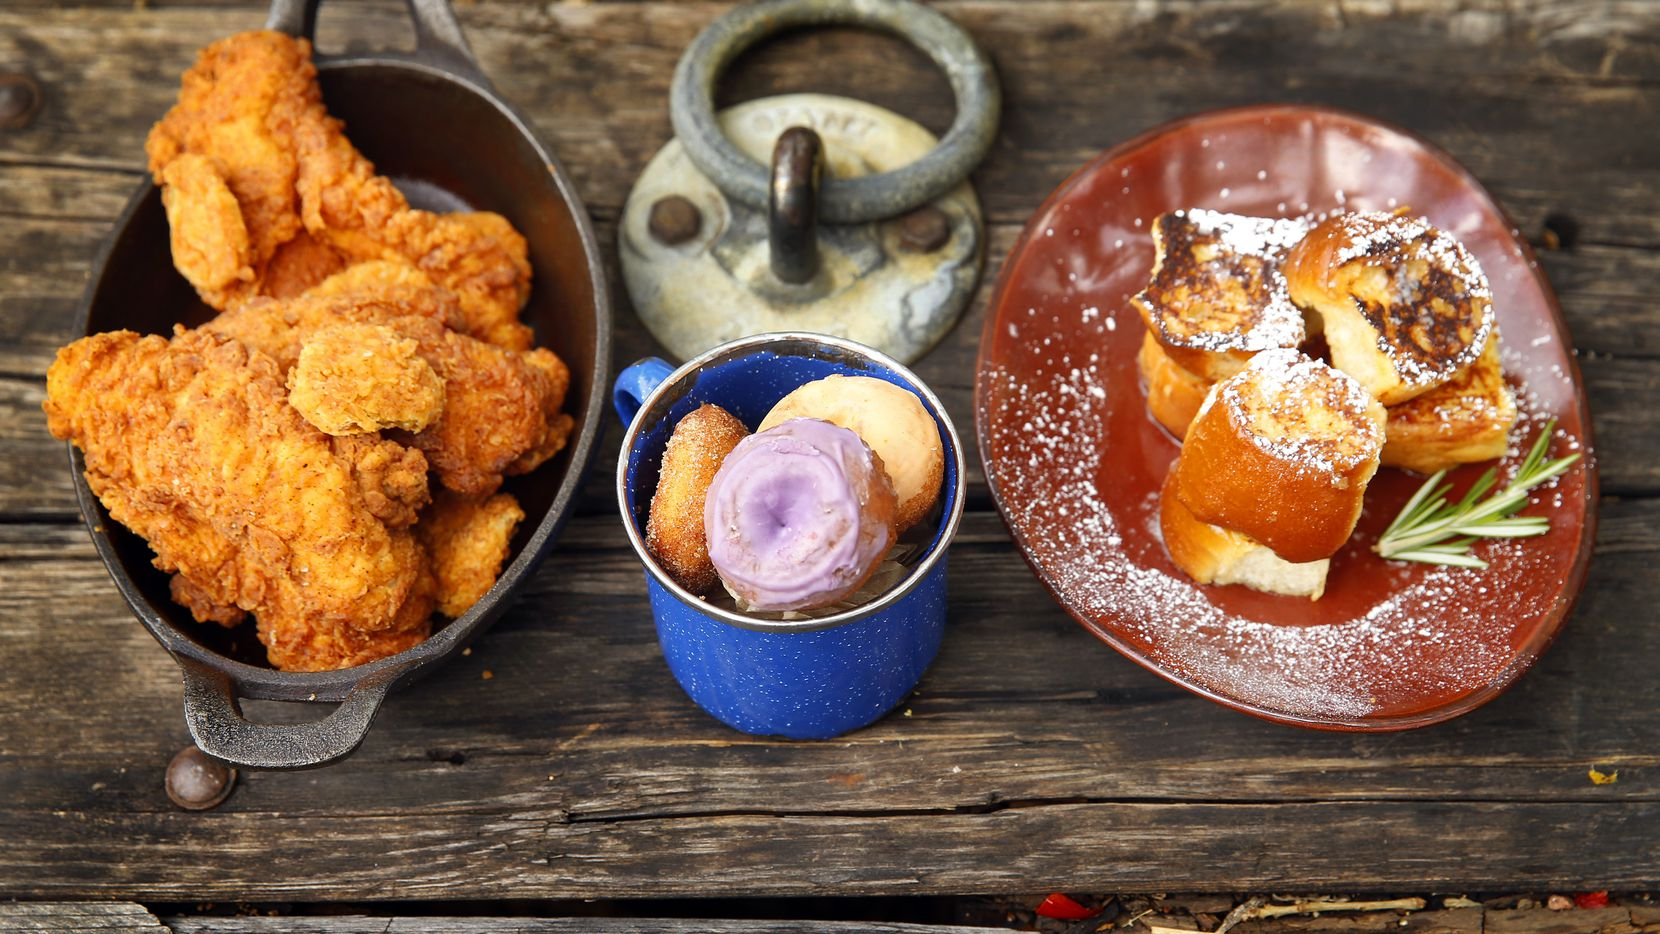 (from left) Nashville-style spicy fried chicken, daily donuts and baby fried toast (hand-cut challah, soaked in vanilla custard and topped with house-made rosemary syrup) are served from the Jam 'N Toast brunch menu at The Rustic on Howell St. in Dallas, Sunday, April 28, 2019.